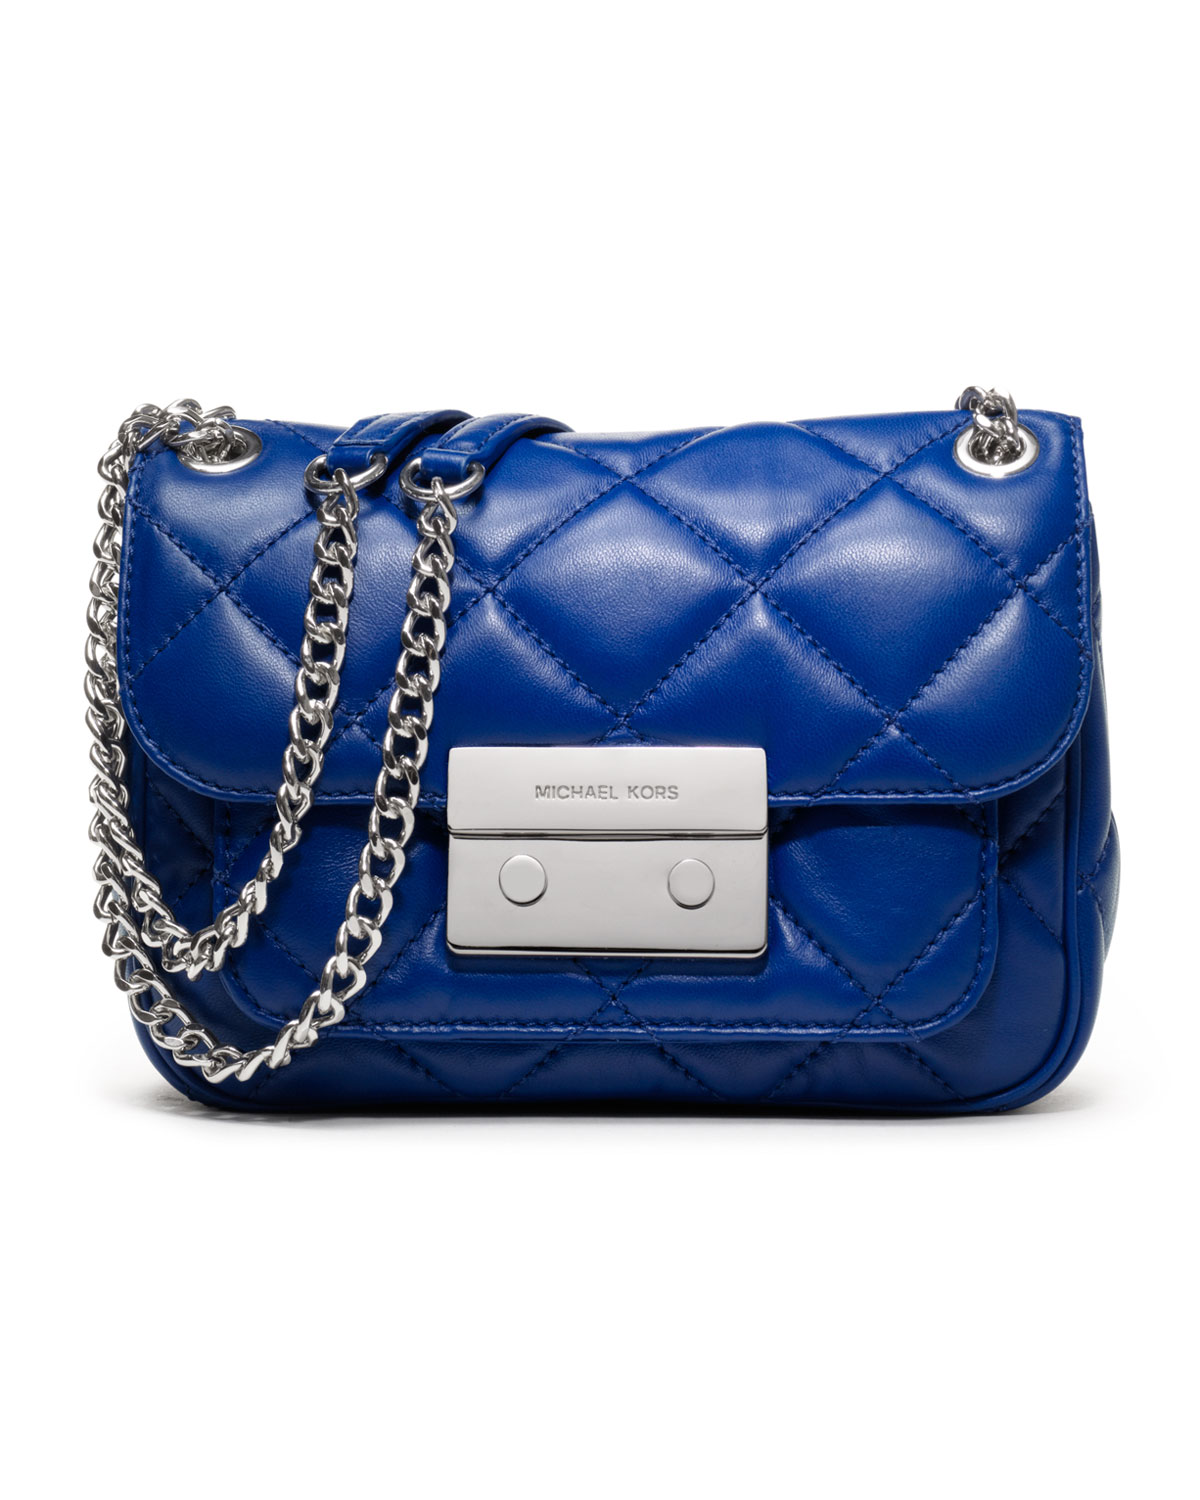 9fbc071e15da Michael Kors Small Blue Purse - Best Purse Image Ccdbb.Org